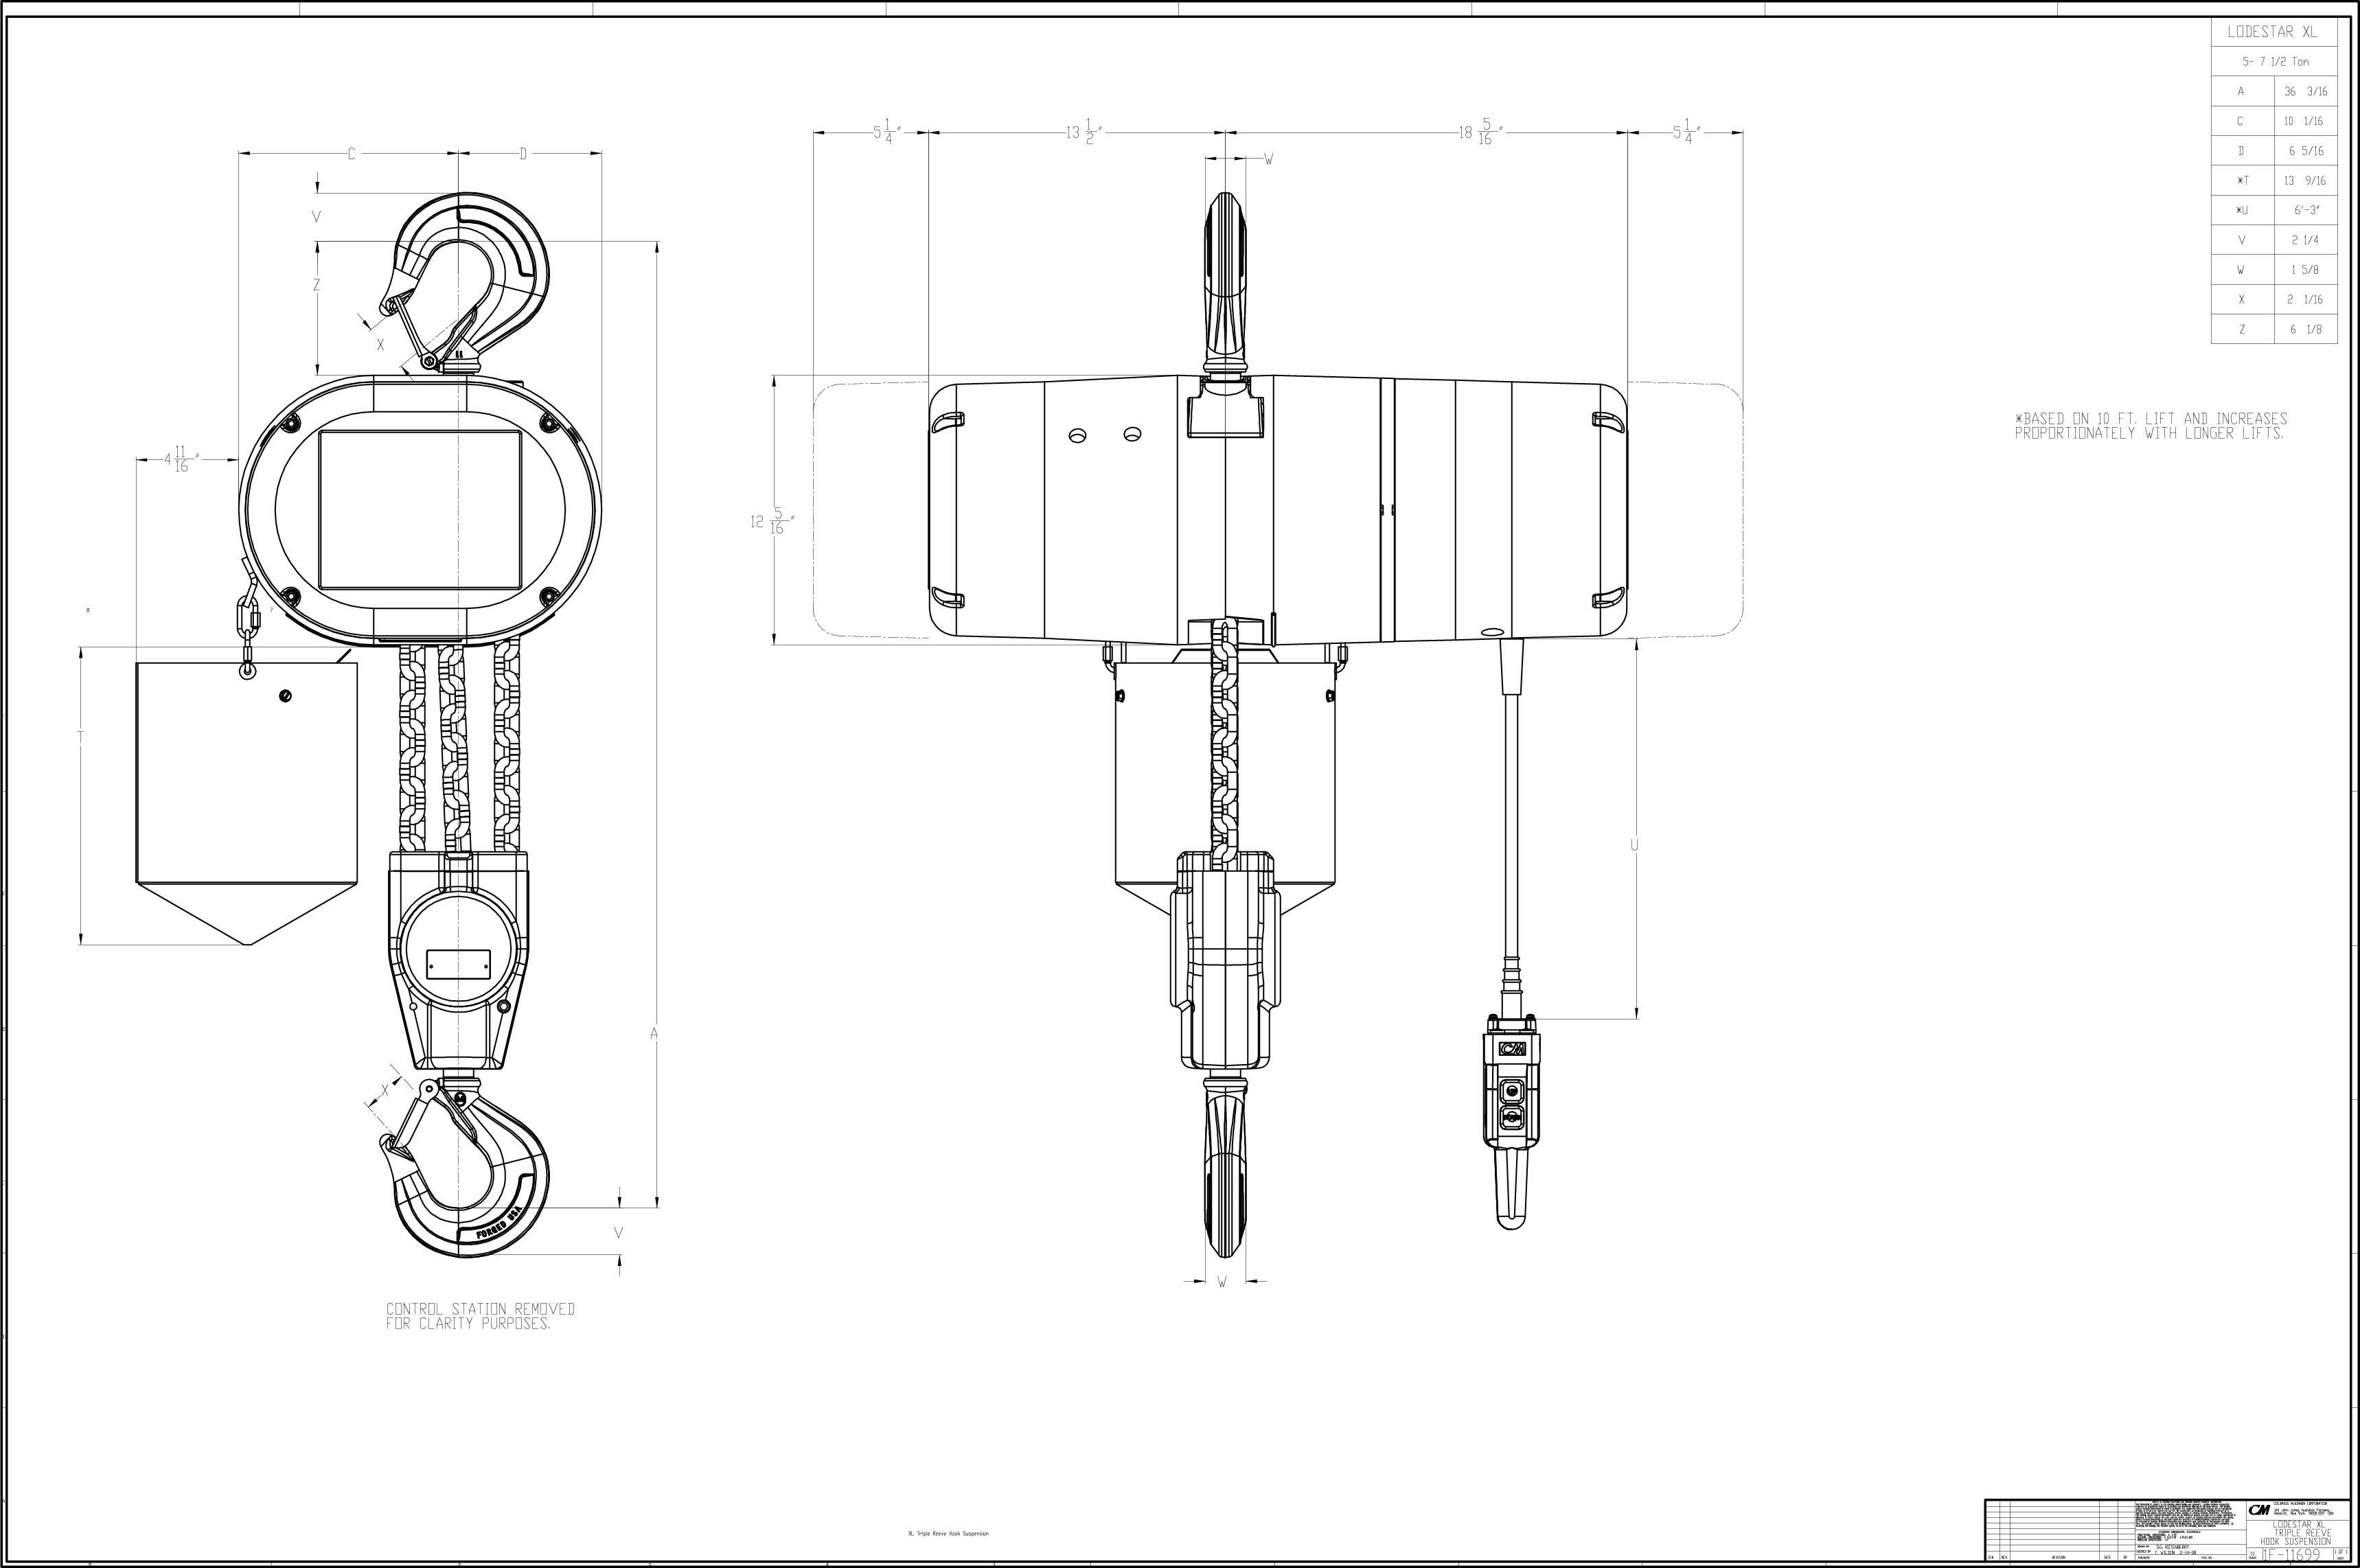 hoist wiring diagram 5 speed